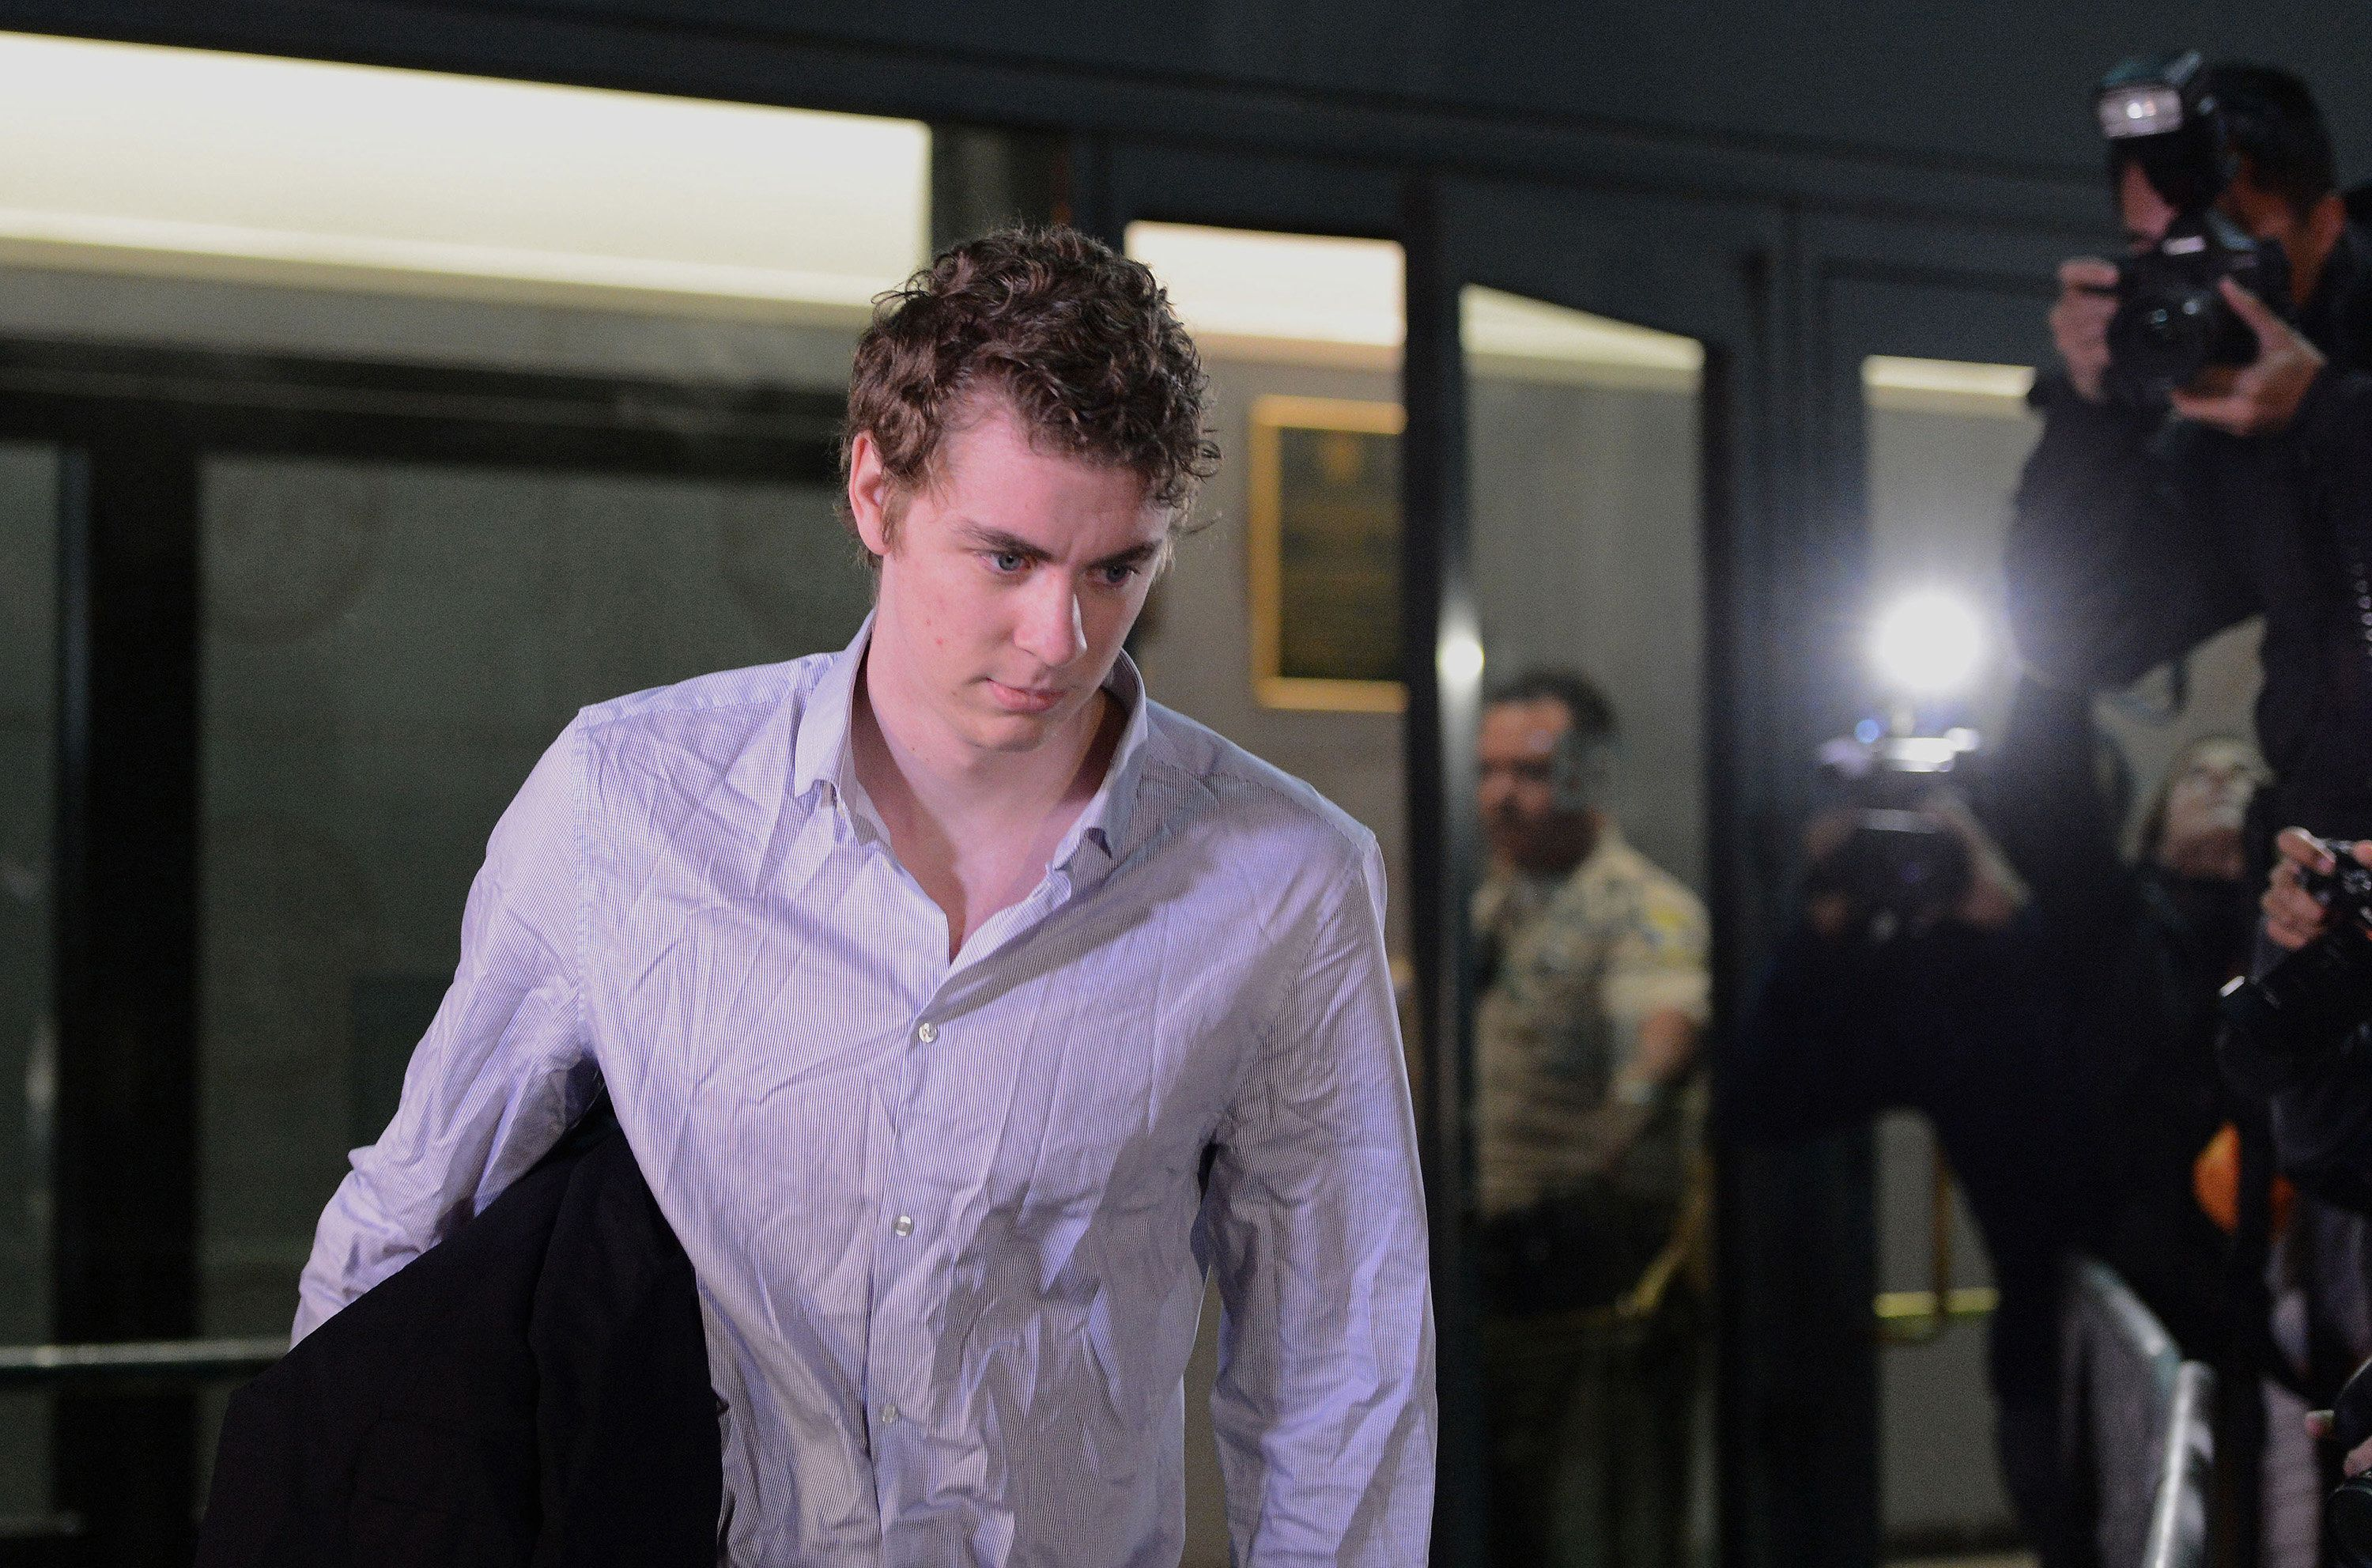 Brock Turner leaves the Santa Clara County jail on Sept. 2, 2016, after serving just three months for...